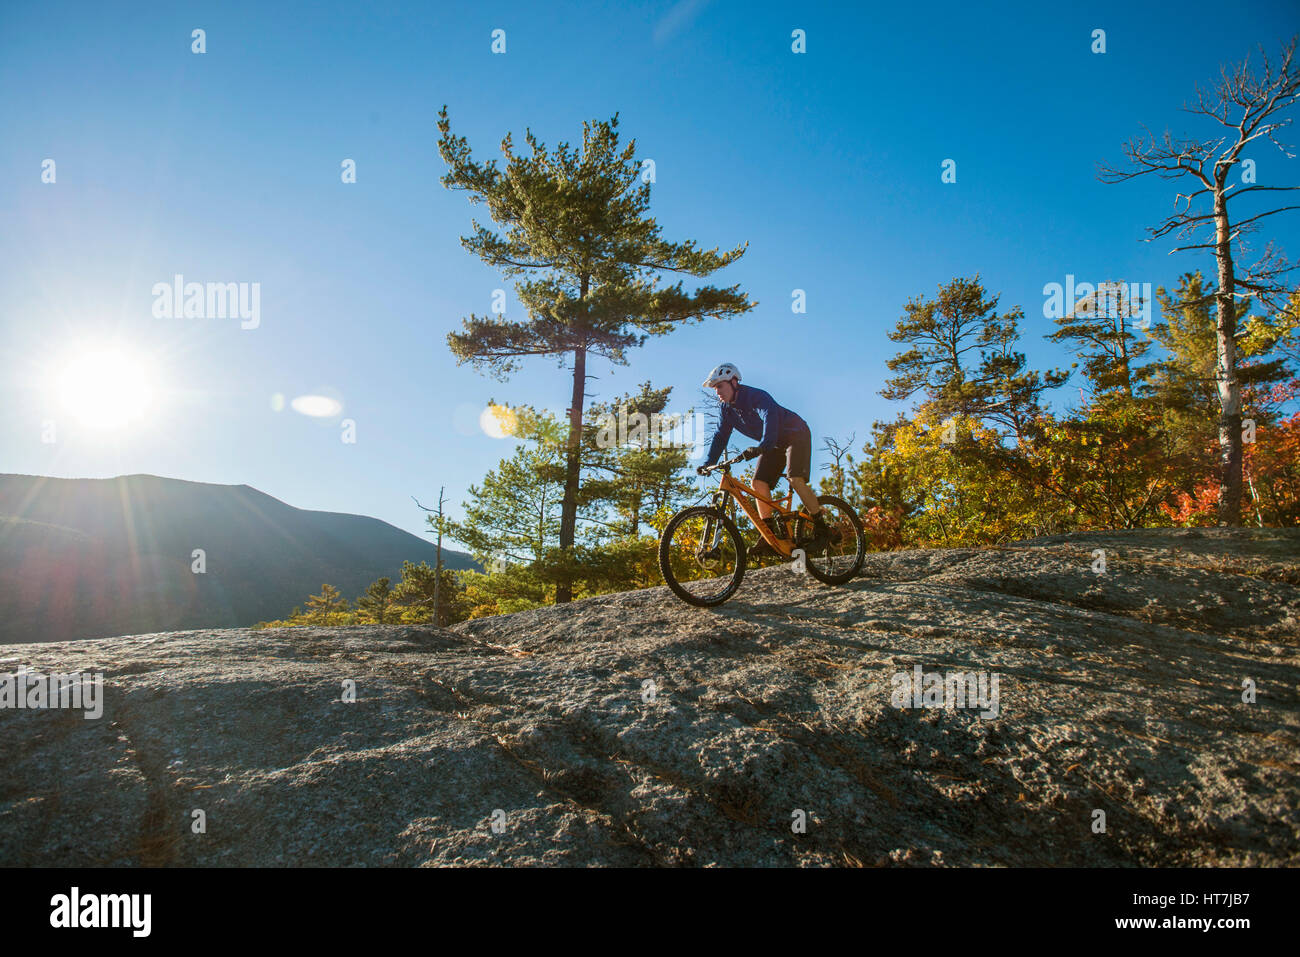 Alex Leich On The Bare Granite Slabs Of Whitehorse Ledge In North Conway, New Hampshire - Stock Image